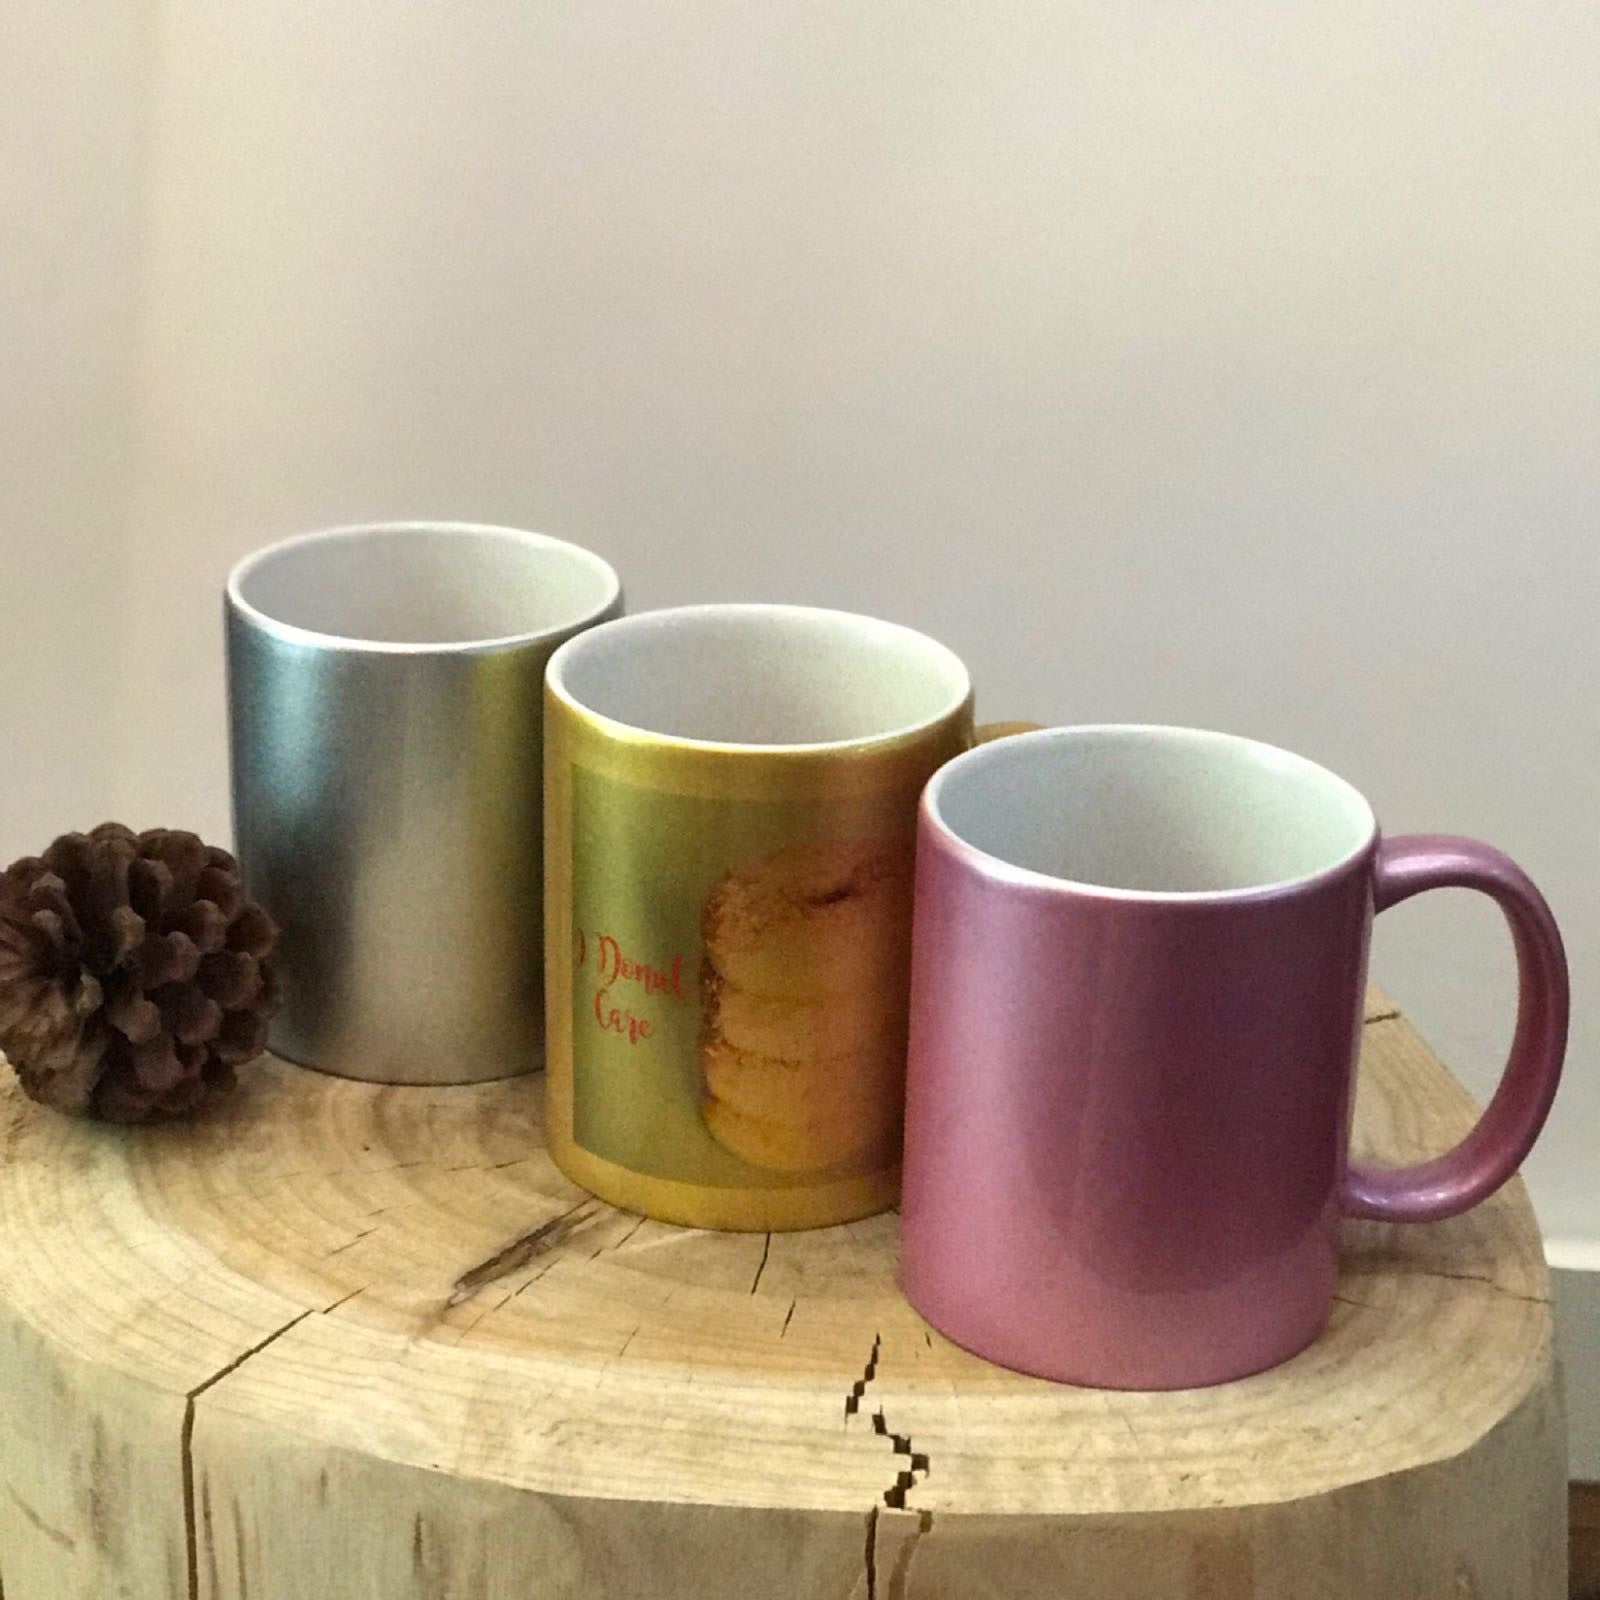 Shimmer Coloured Mug - Personalised with your own text